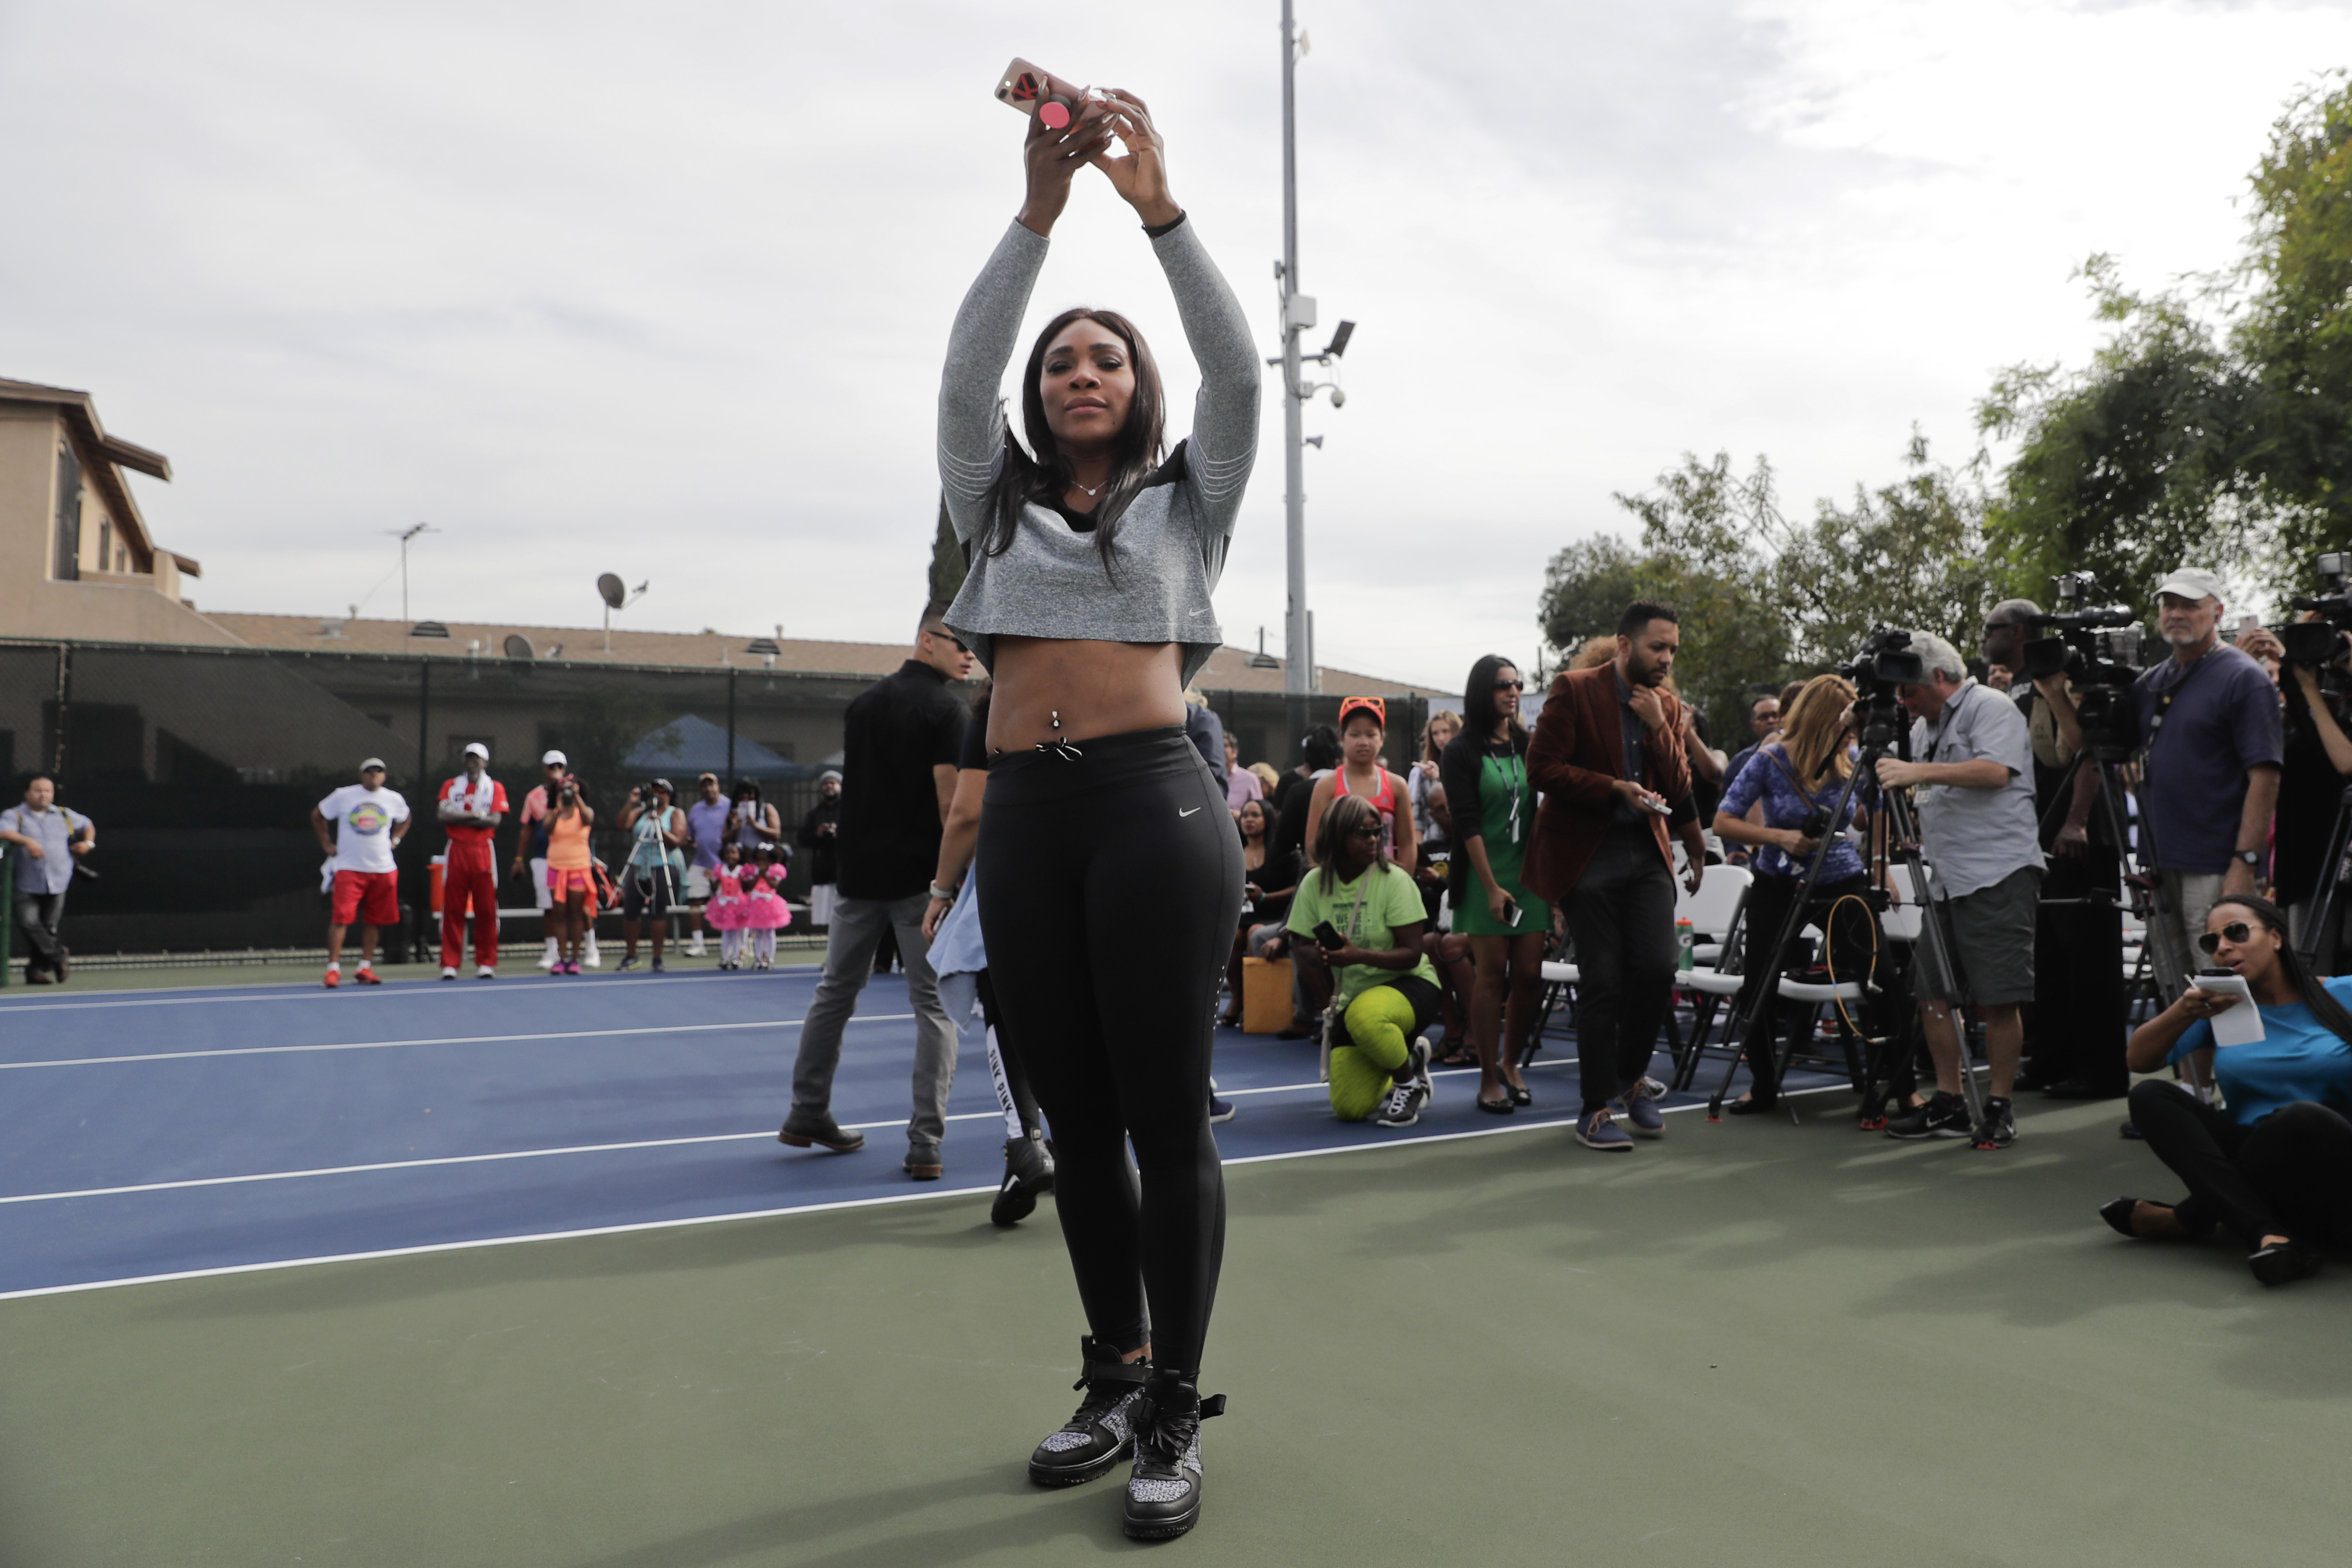 Serena Williams takes pictures of the Leuders Park tennis courts before the start of a dedication ceremony Saturday, Nov. 12, 2016, in Compton, Calif. The Williams sisters were honored with having the courts dedicated in their name. (AP Photo/Jae C. Hong)